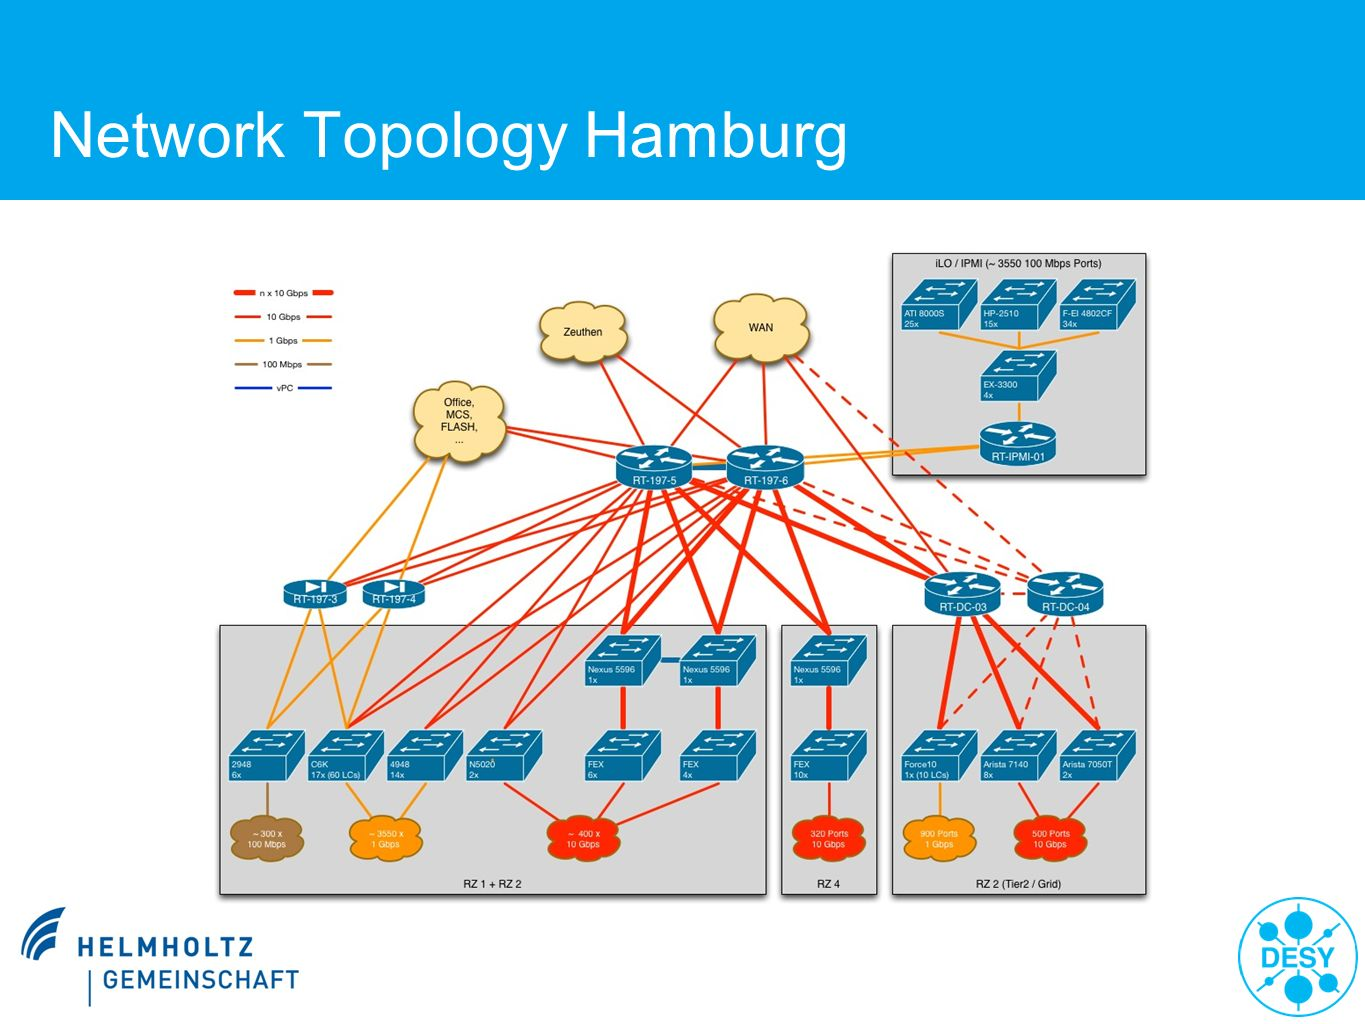 Network Topology Hamburg